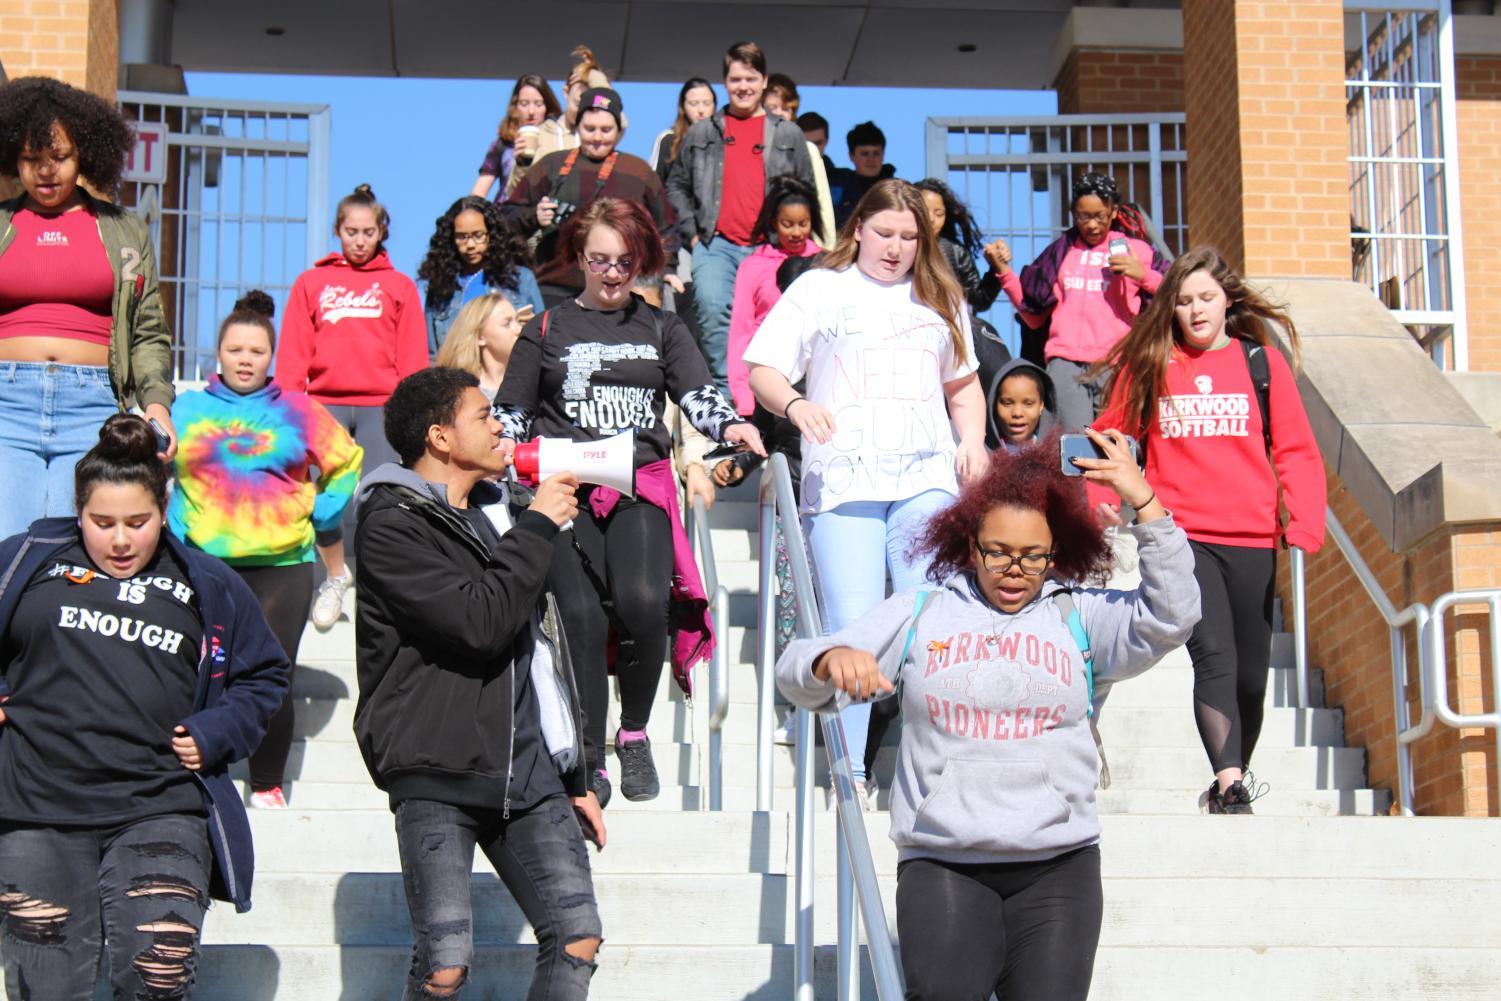 Students+walk+down+the+stairs.